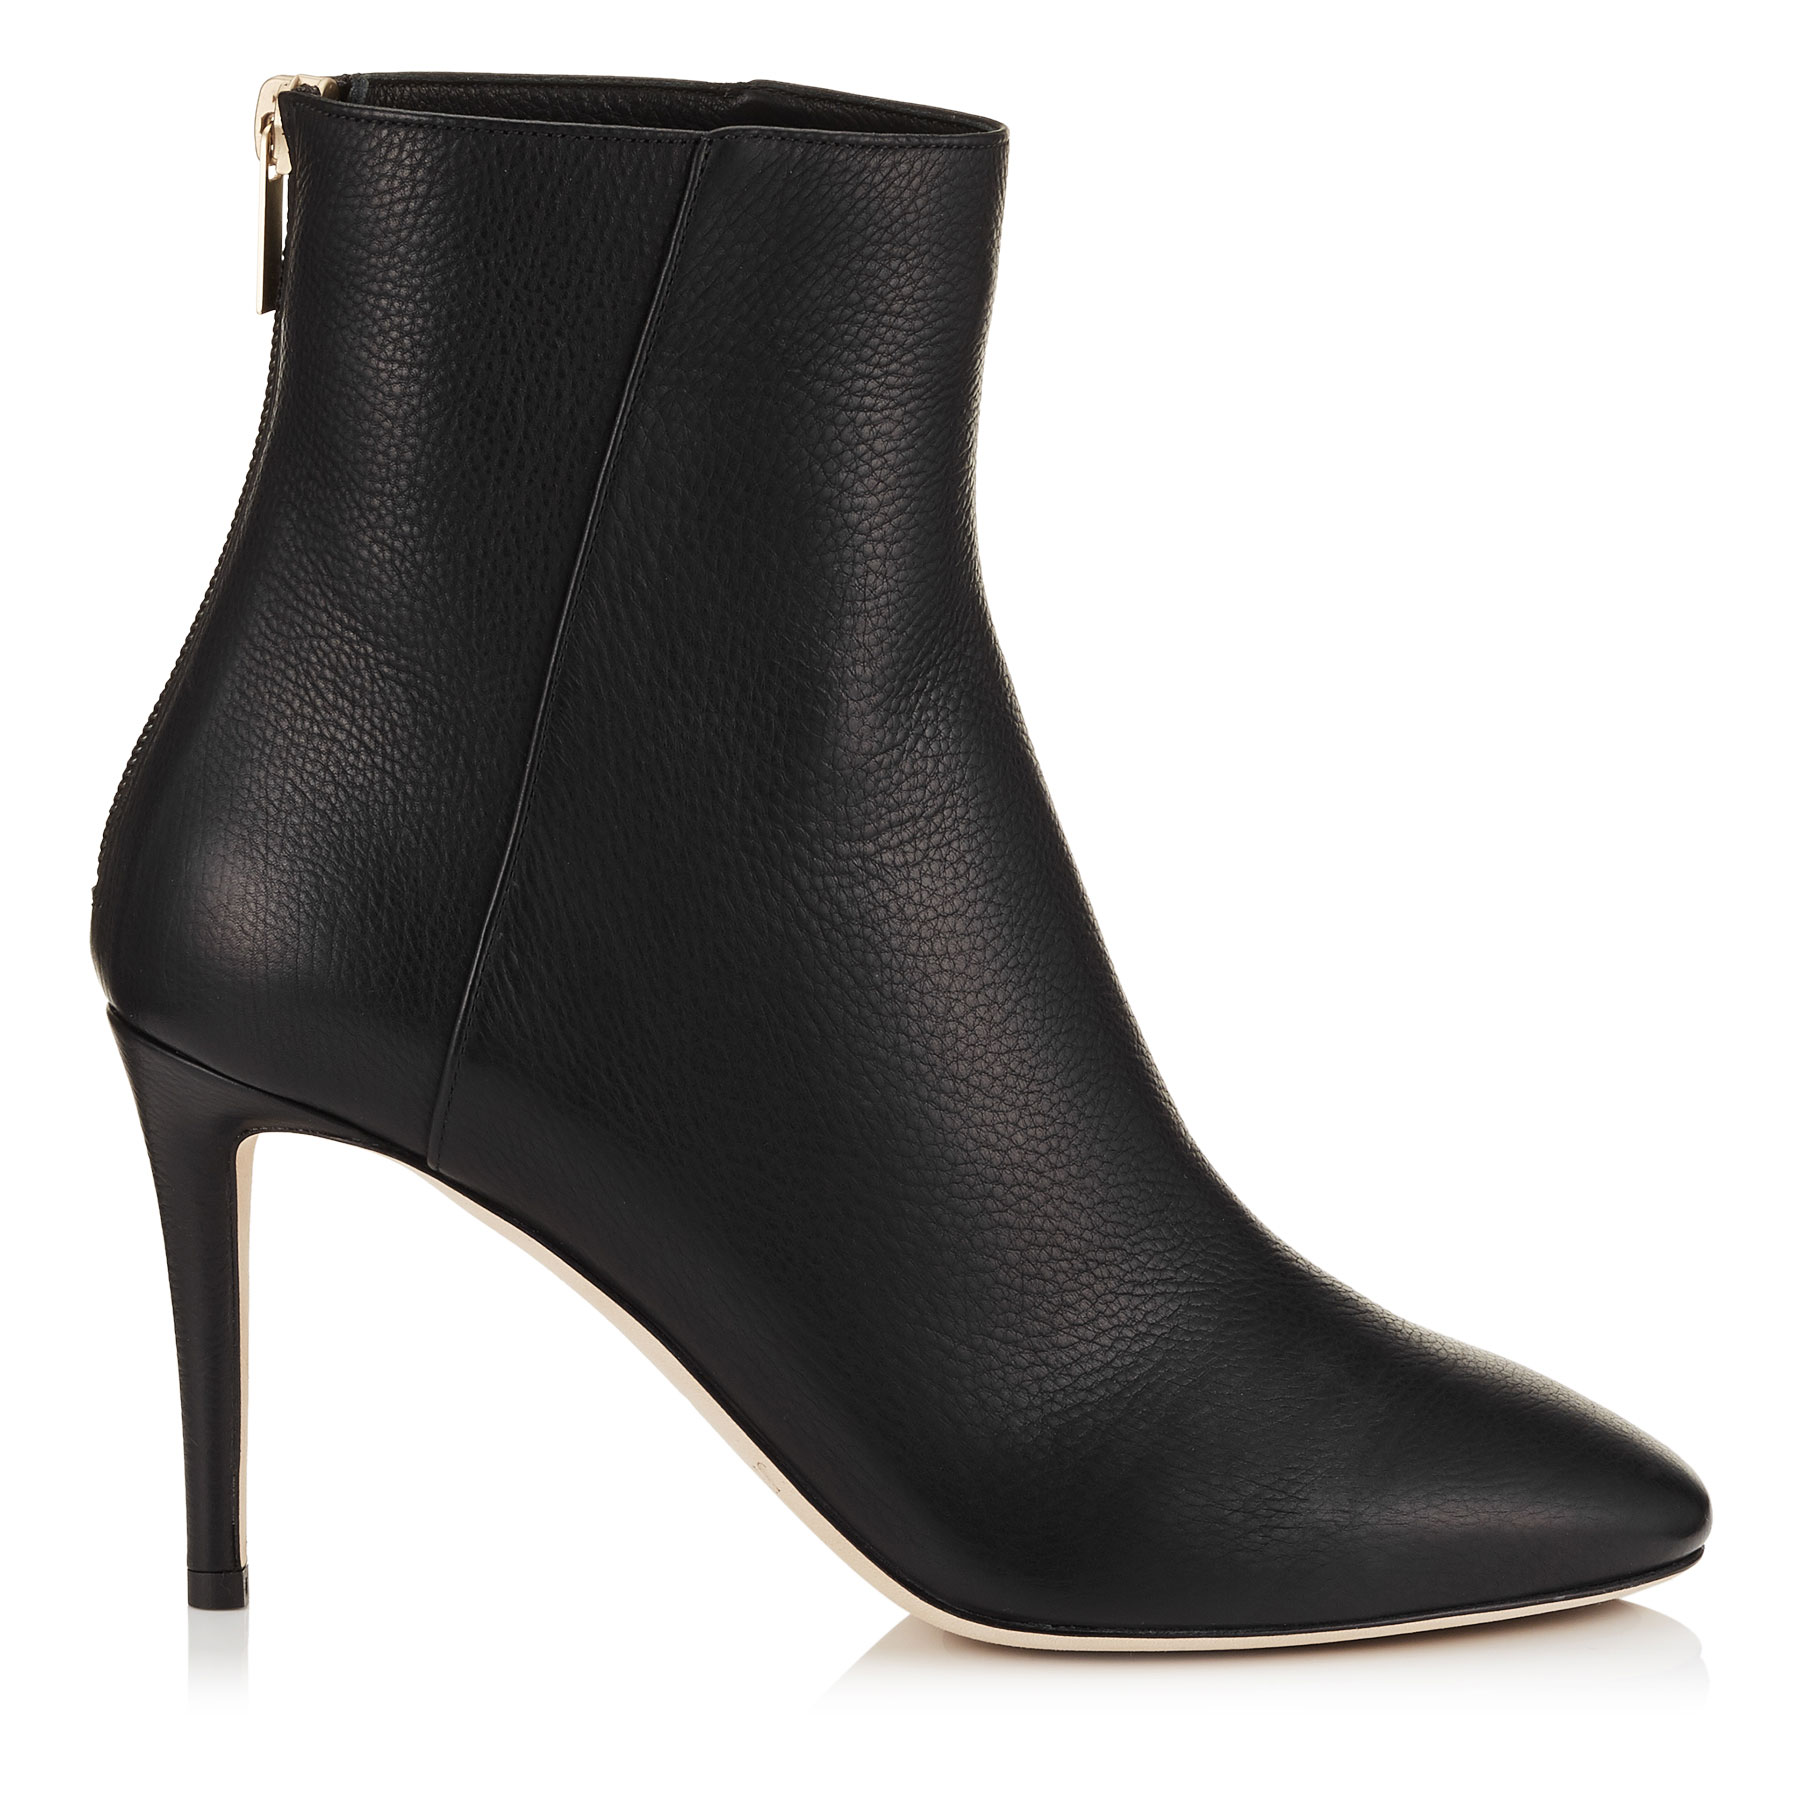 DUKE 85 Black Grainy Calf Leather Ankle Boots by Jimmy Choo